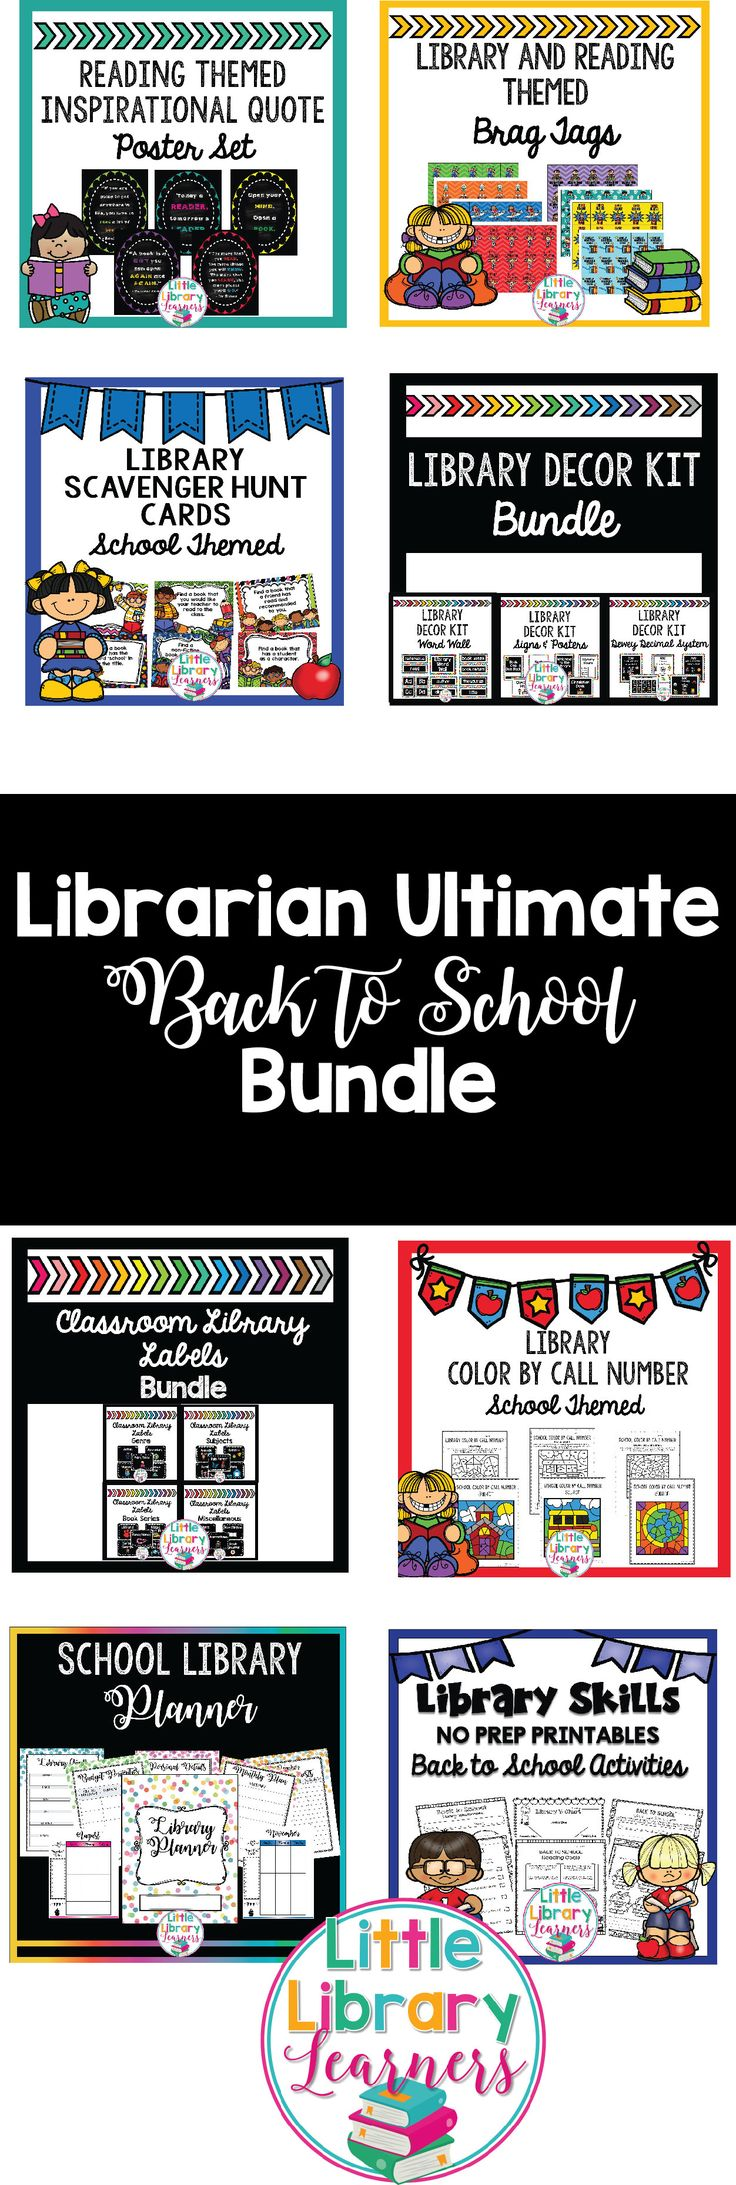 This Librarian Ultimate Back to School Bundle for the School Library is the perfect Library resource for the elementary Teacher Librarian. It includes resources to get you organized for the school year including a Library Planner, Back to School No Prep Printables, Posters, Labels, Activities and much, much more!